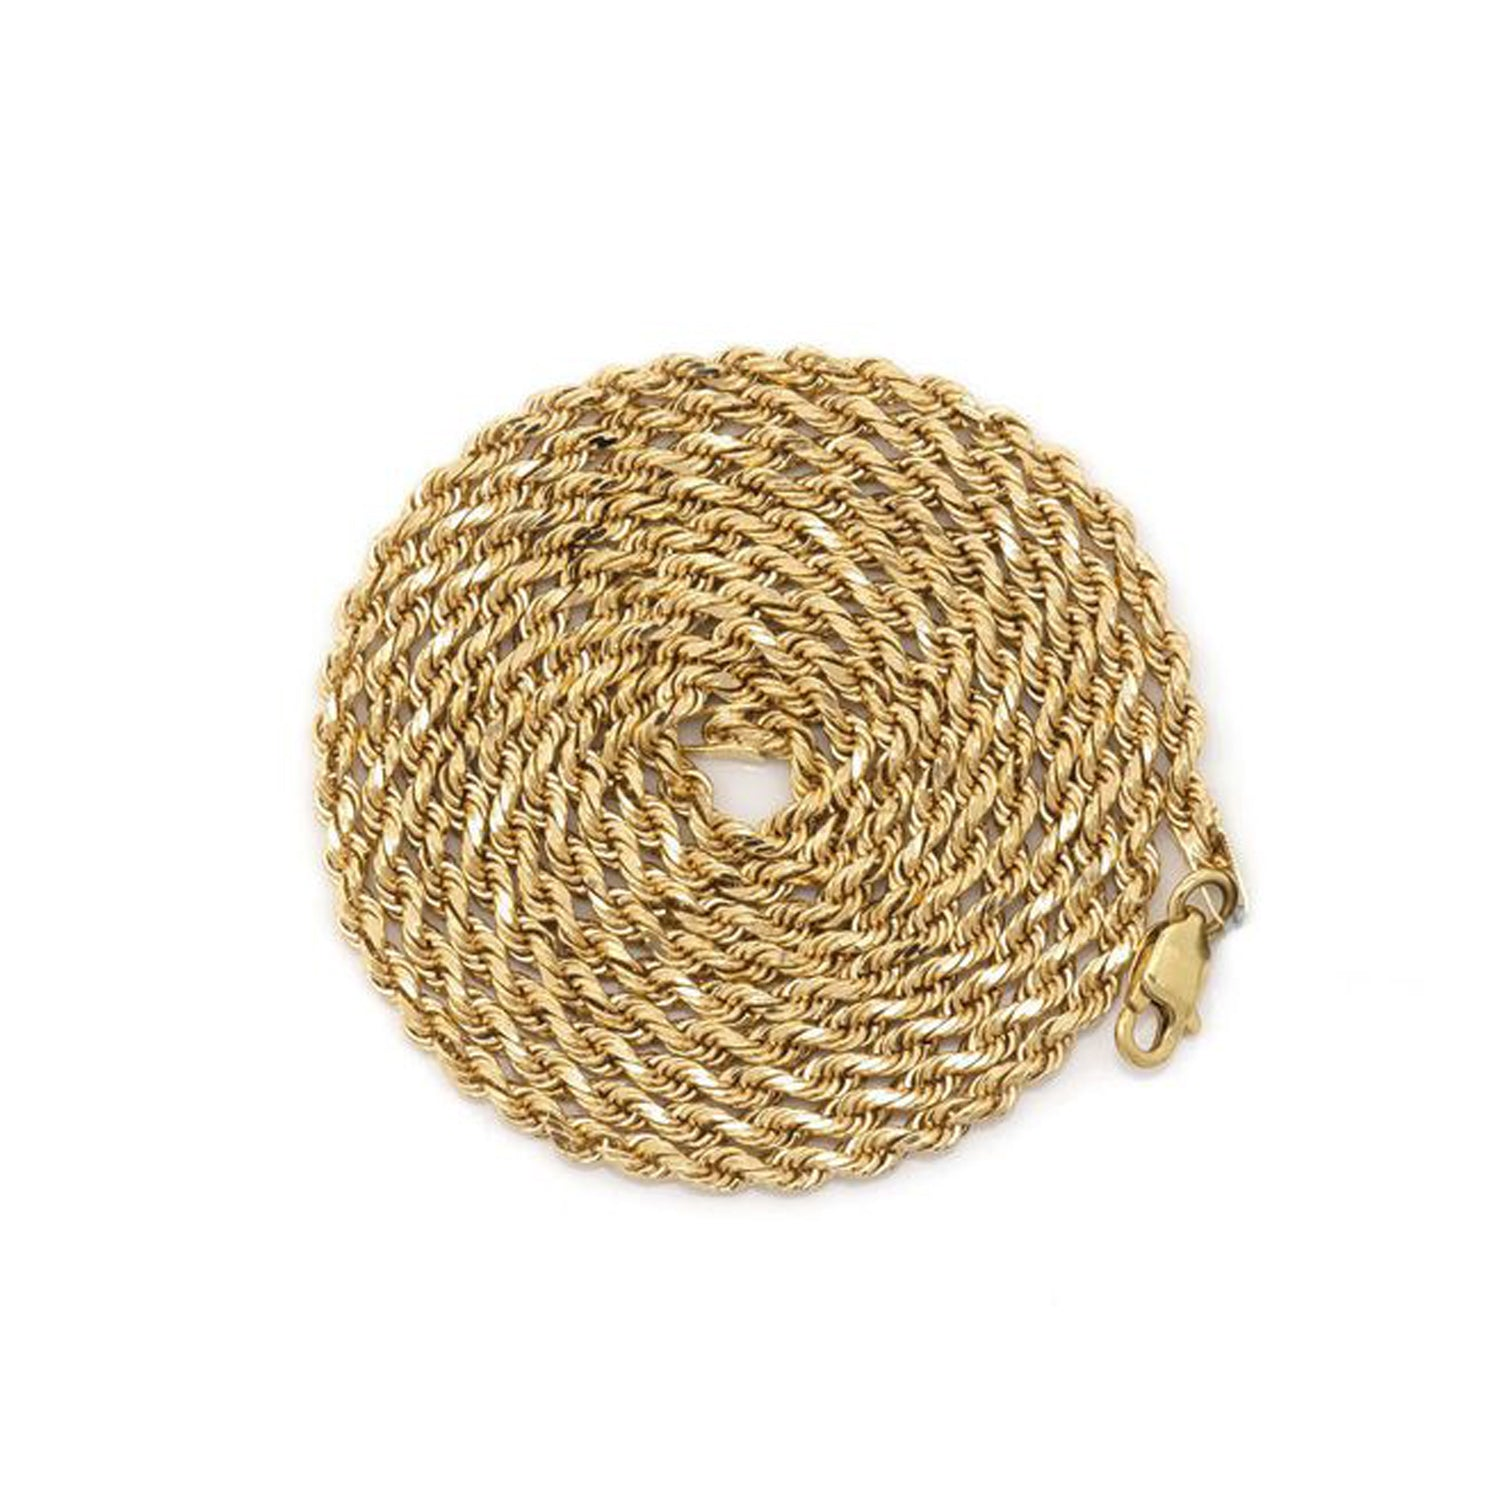 14Kt & 10Kt Solid Gold Diamond Cut Rope Chain (2.5mm)